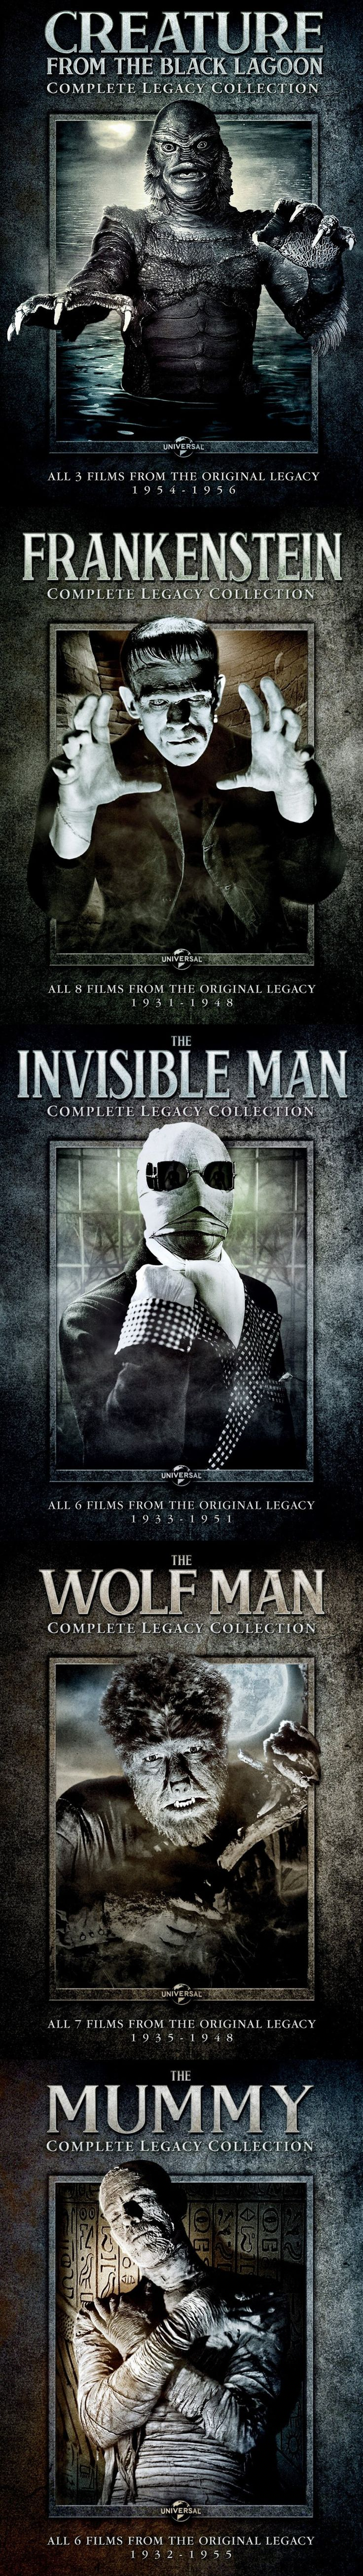 Universal Studios Complete Legacy Collection Monster DVD Sets